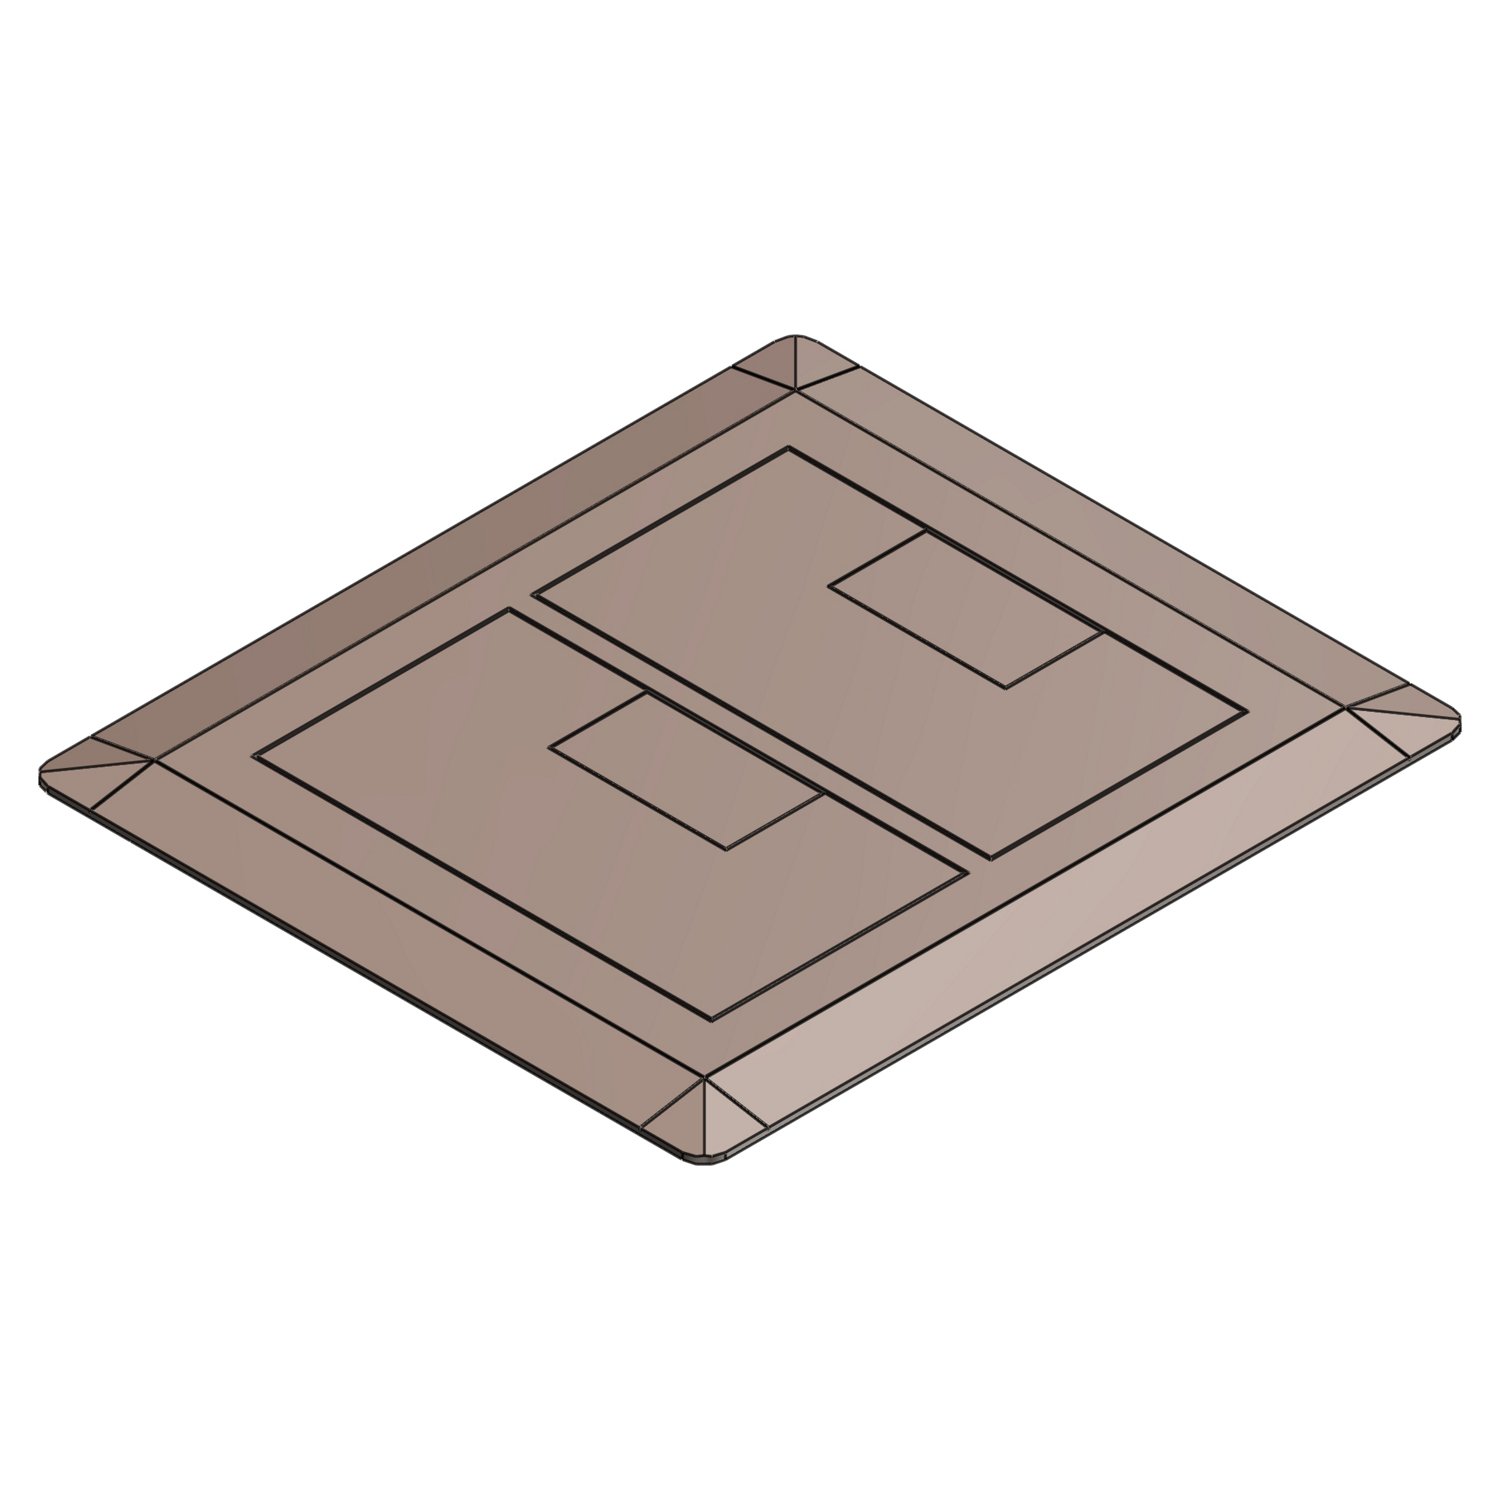 Carlon E9762C Floor Box Cover, 8-1/4 in L x 7.13 in W, Thermoplastic